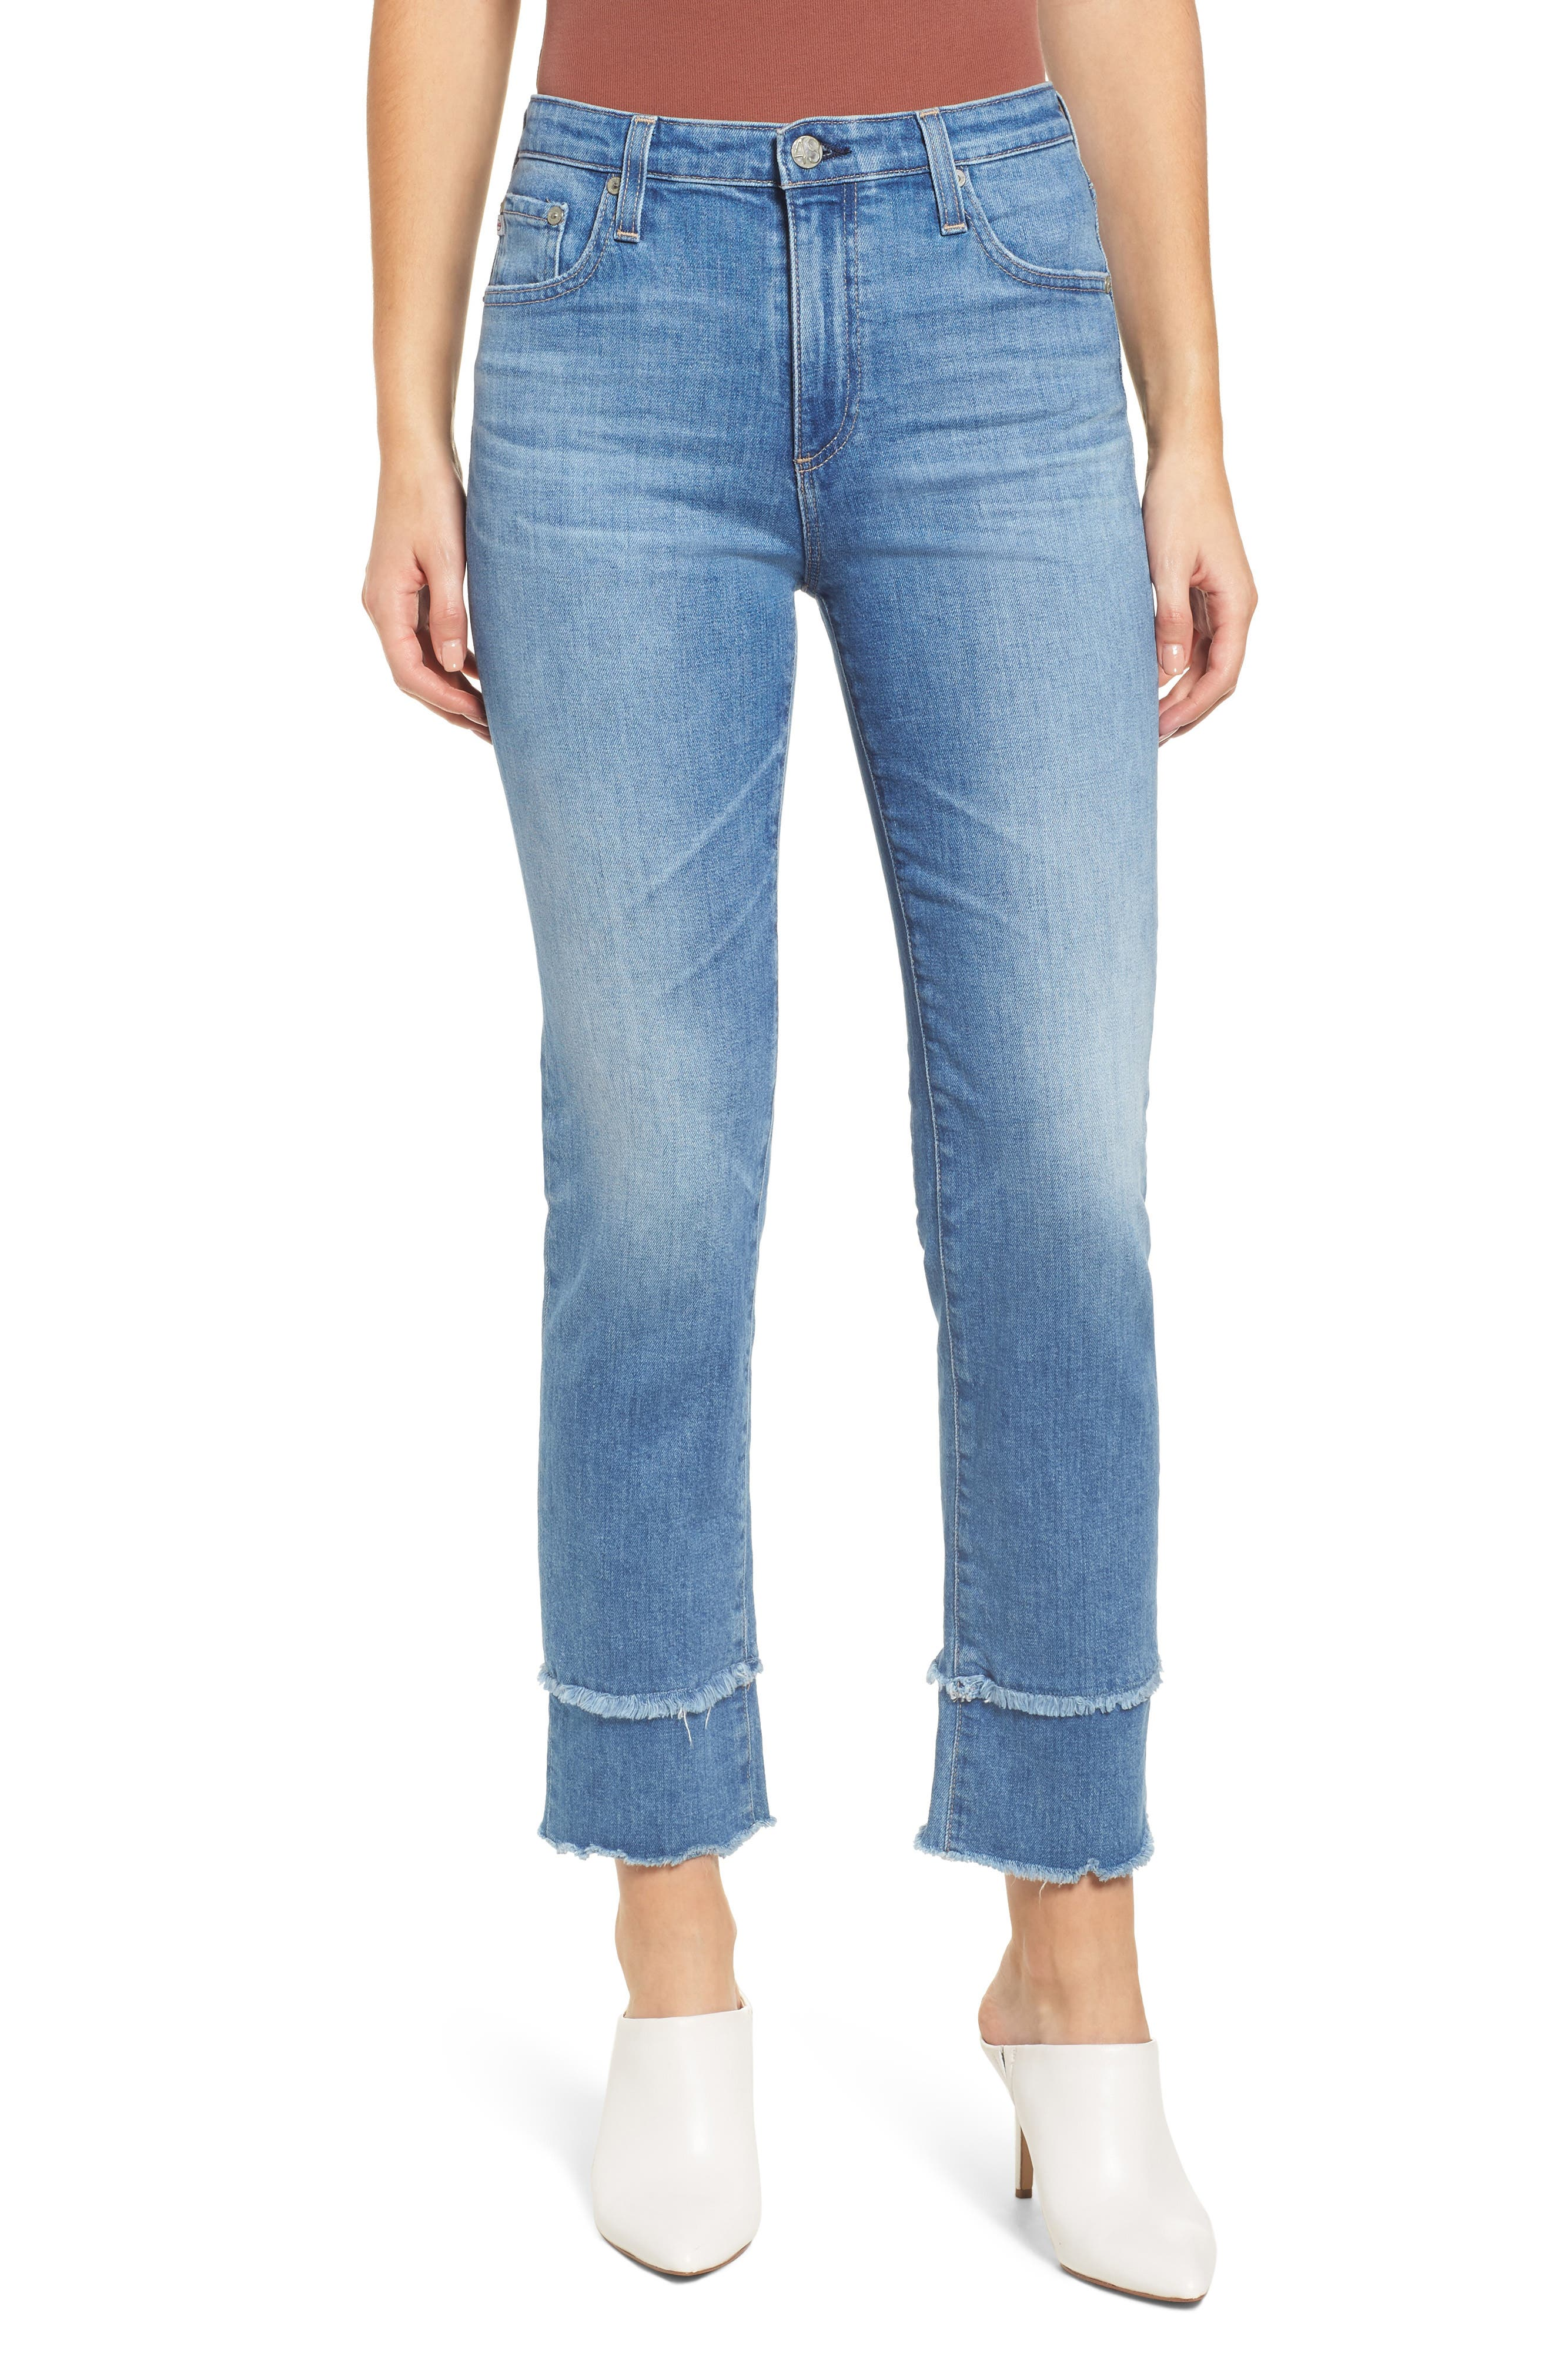 AG, The Isabelle High Waist Straight Leg Jeans, Main thumbnail 1, color, 13Y AWESTRUCK